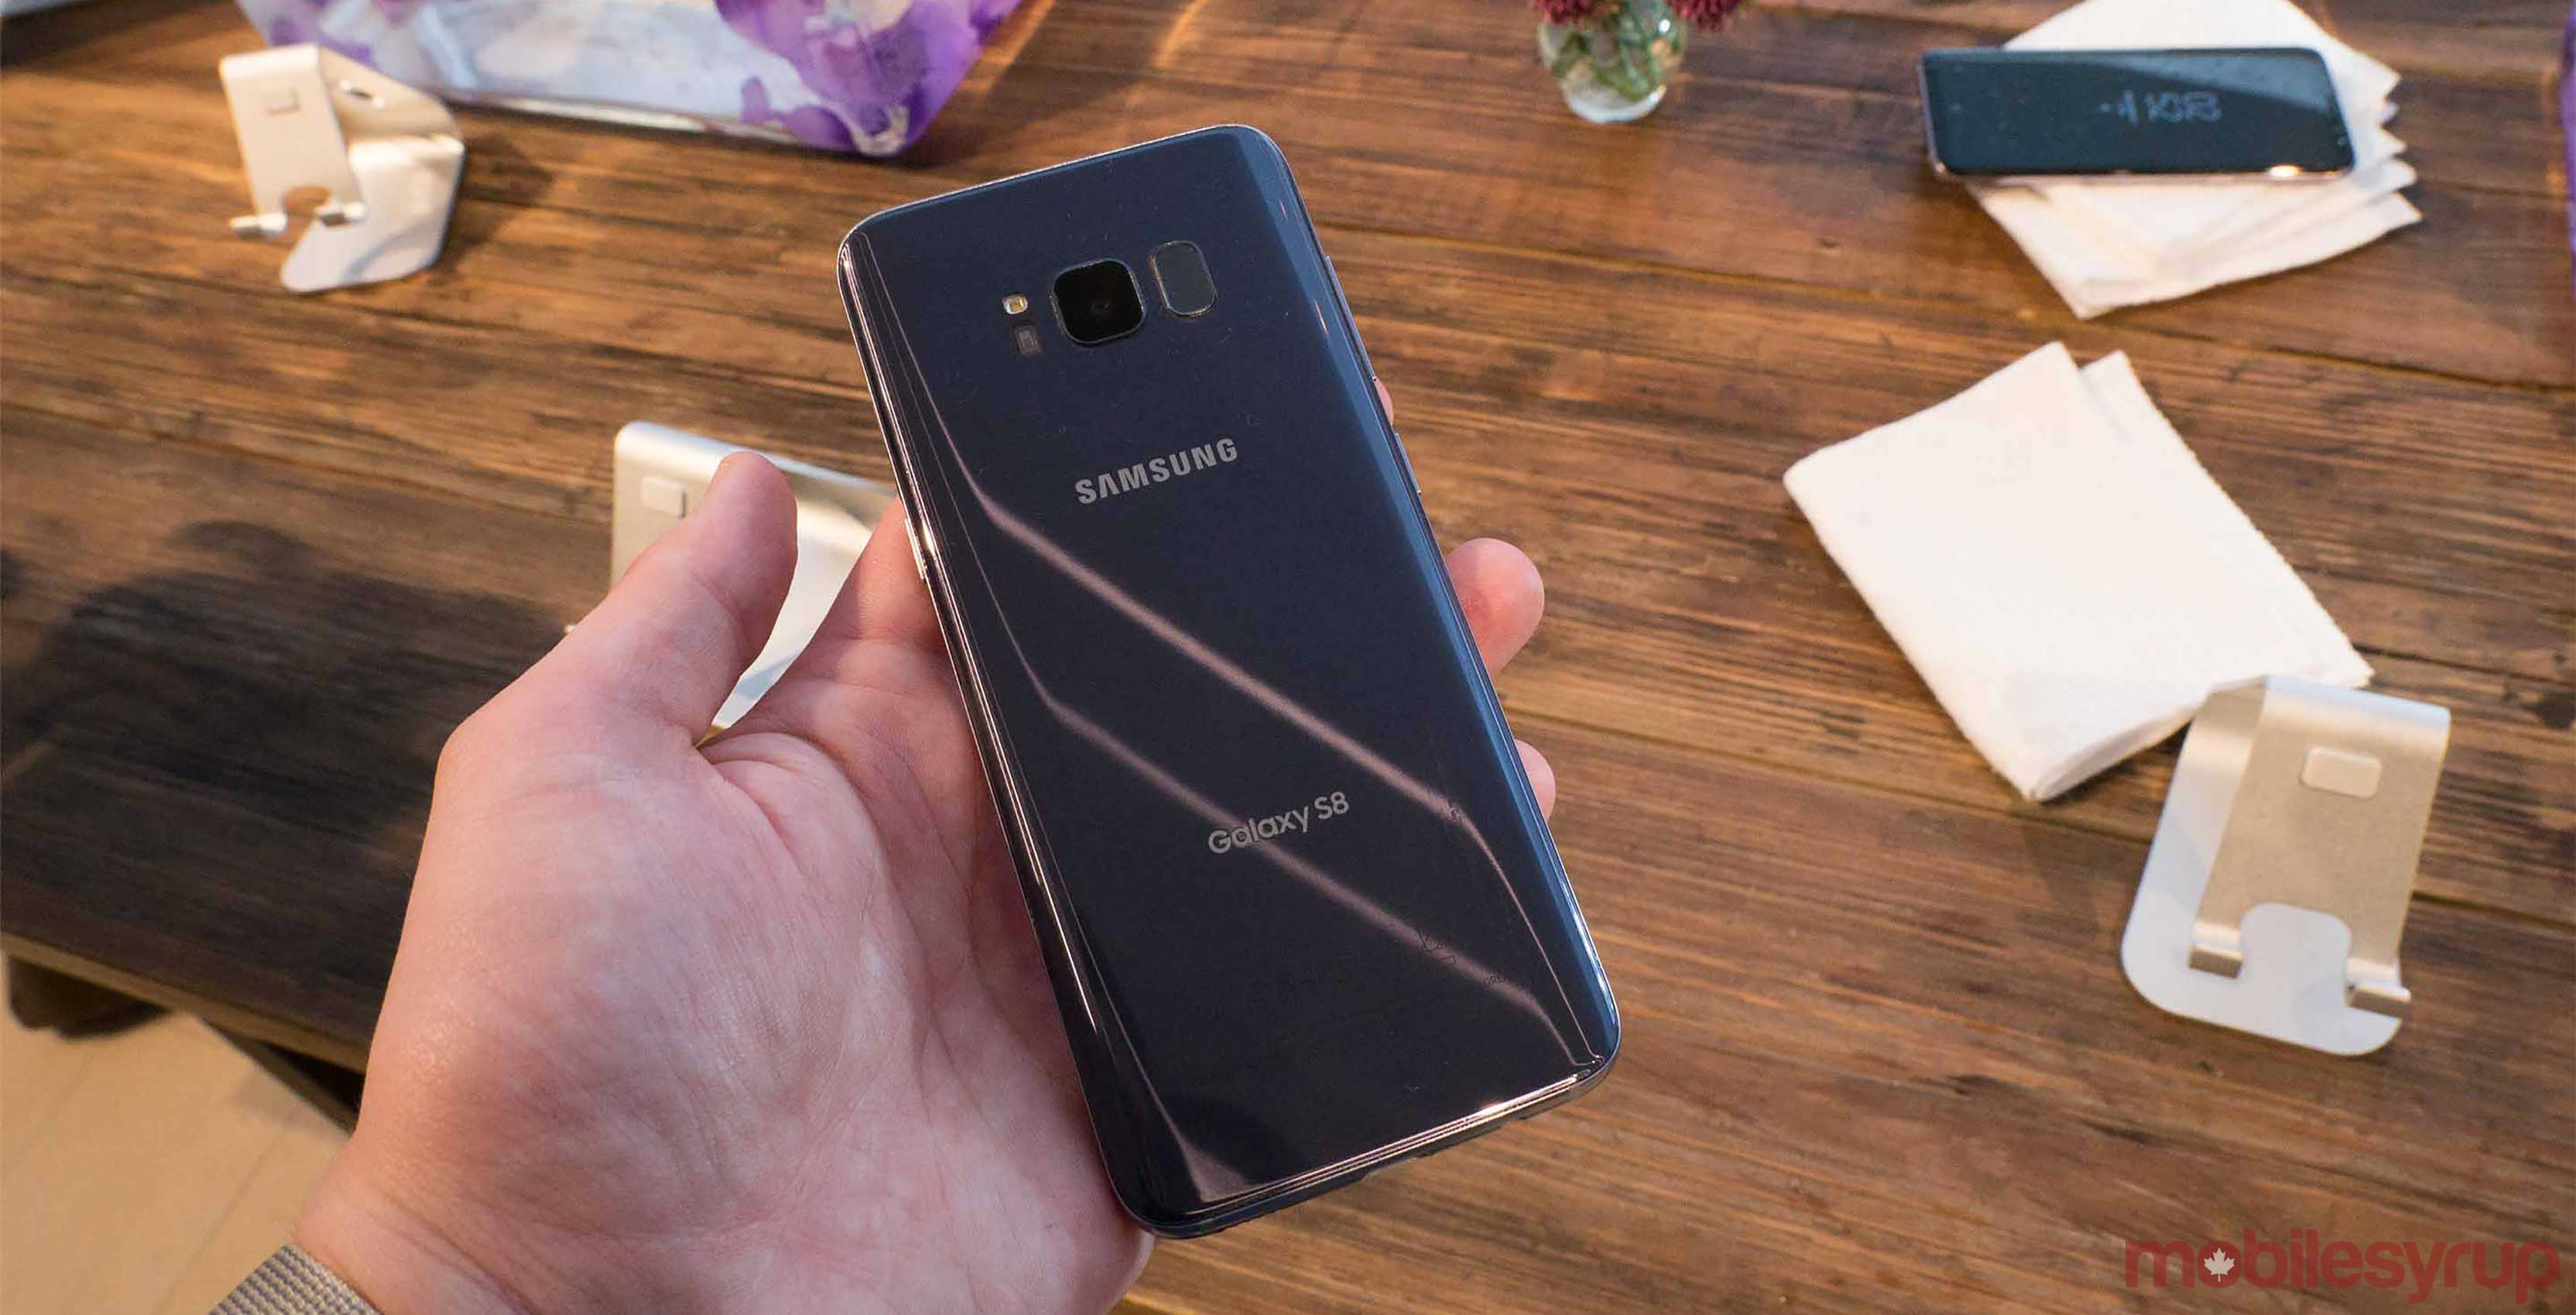 In Addition To Its Many Features And Attractions The Samsung Galaxy S8 Comes With Enhanced Health Service